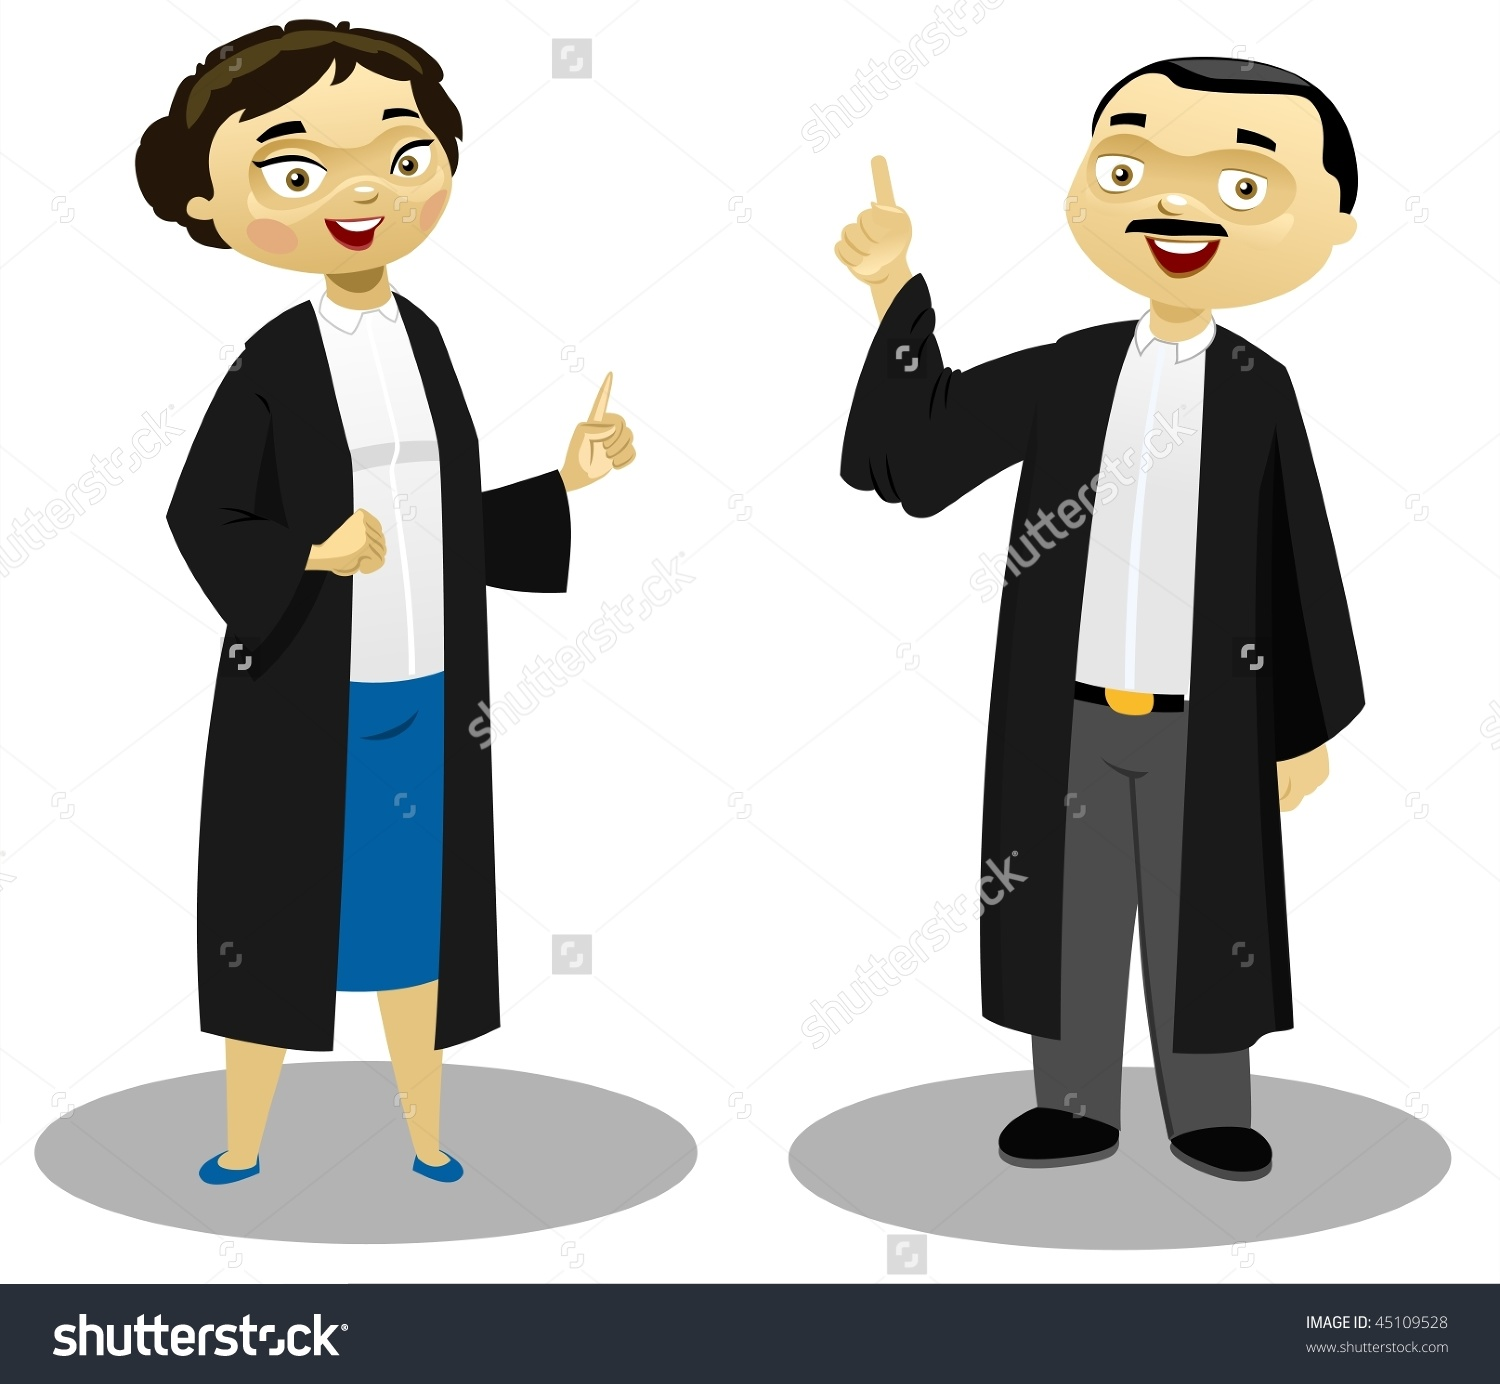 Lawyer clipart advocate. Station